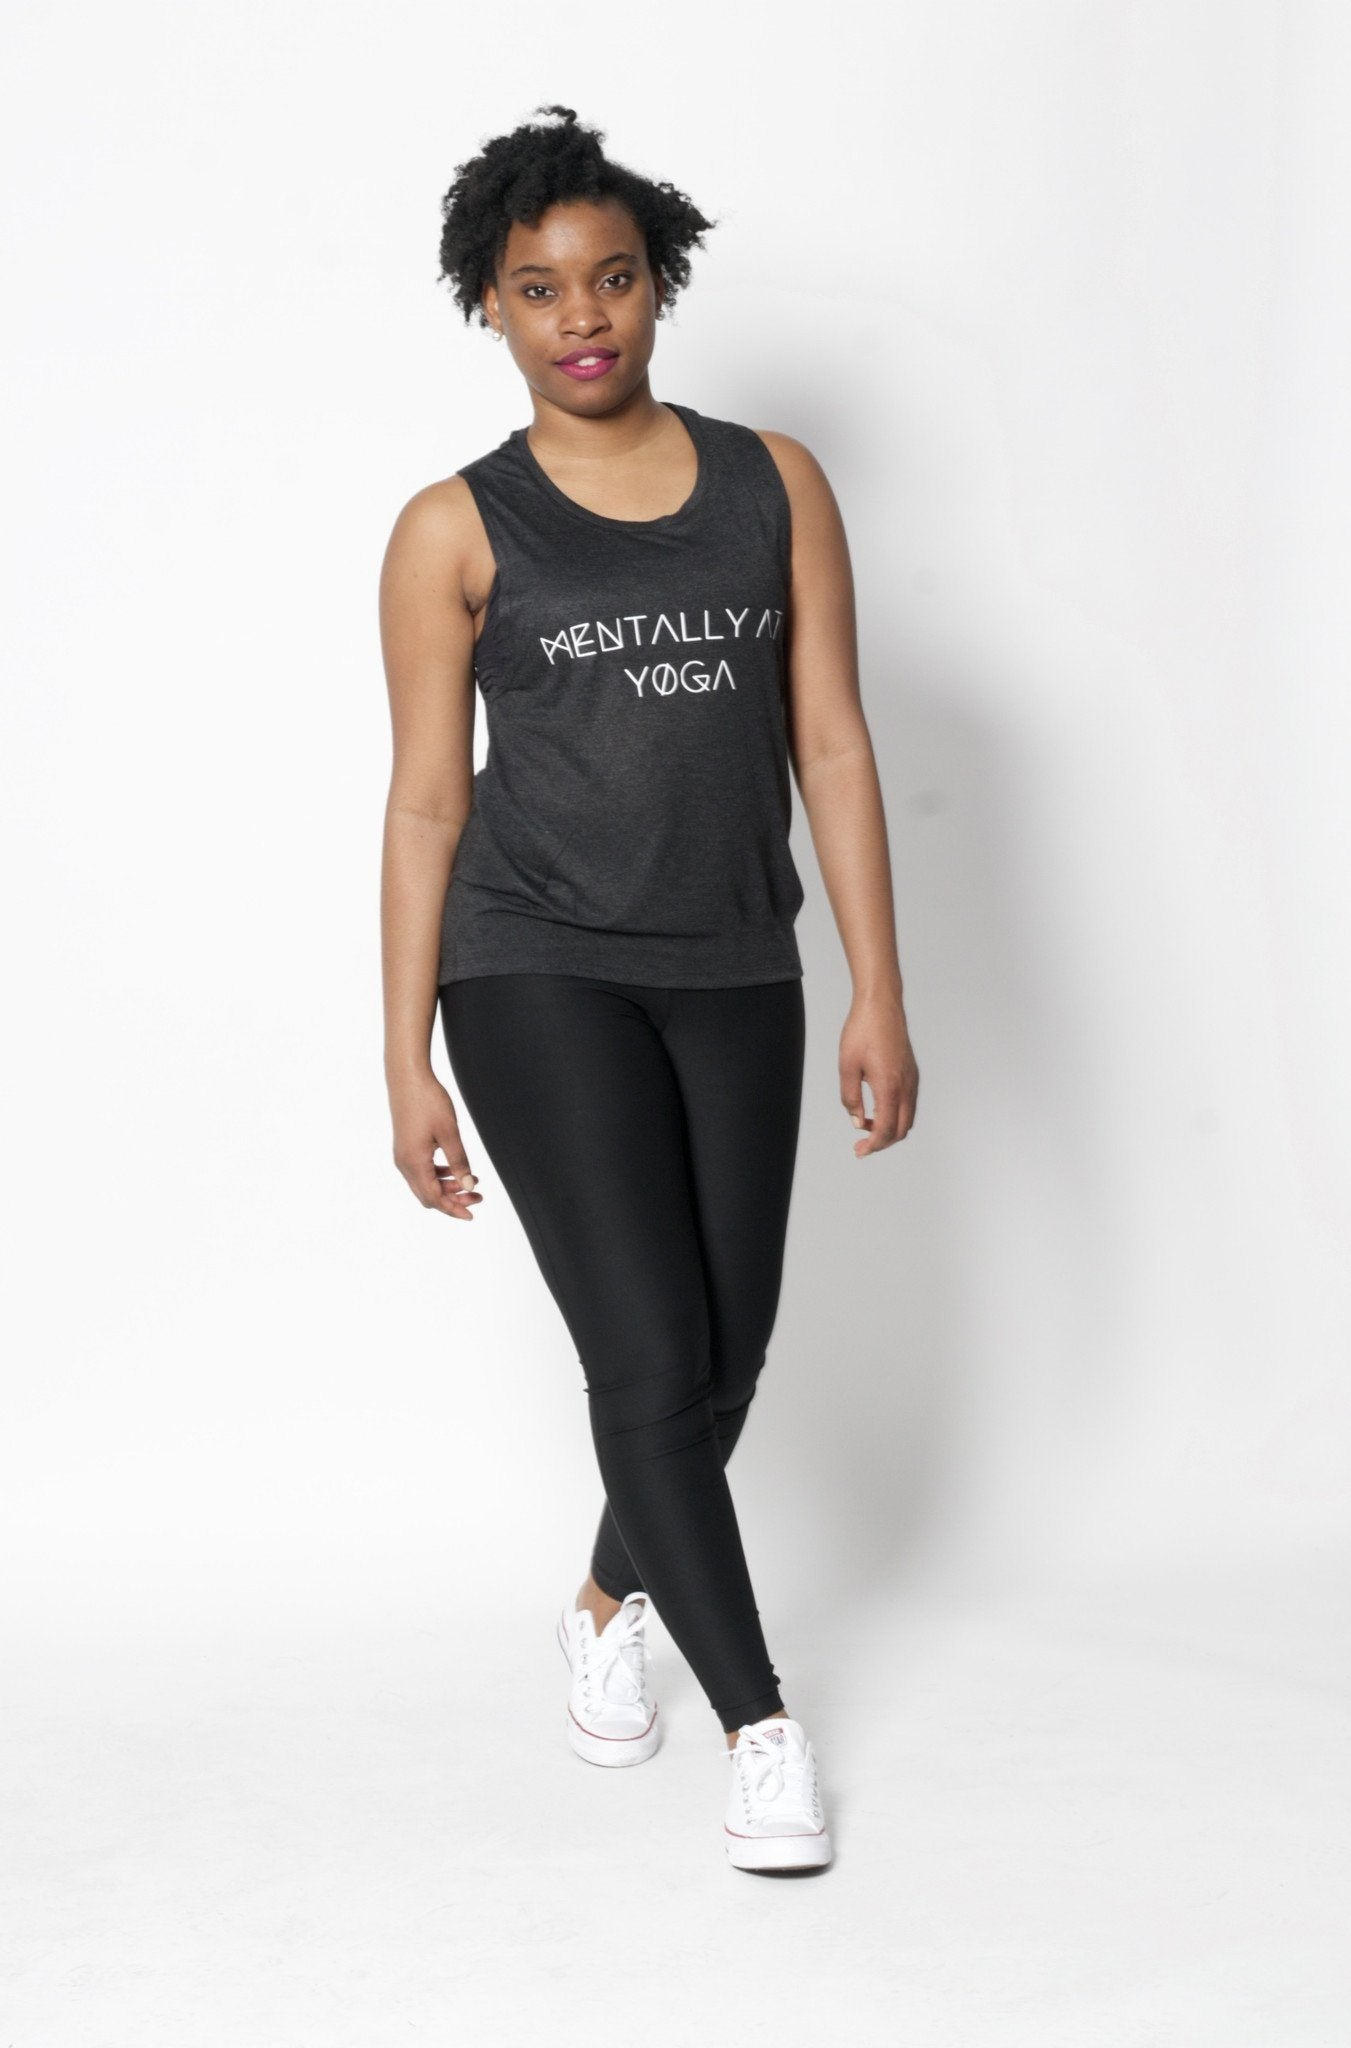 Mentally at Yoga Muscle Tank - Vibrate Higher